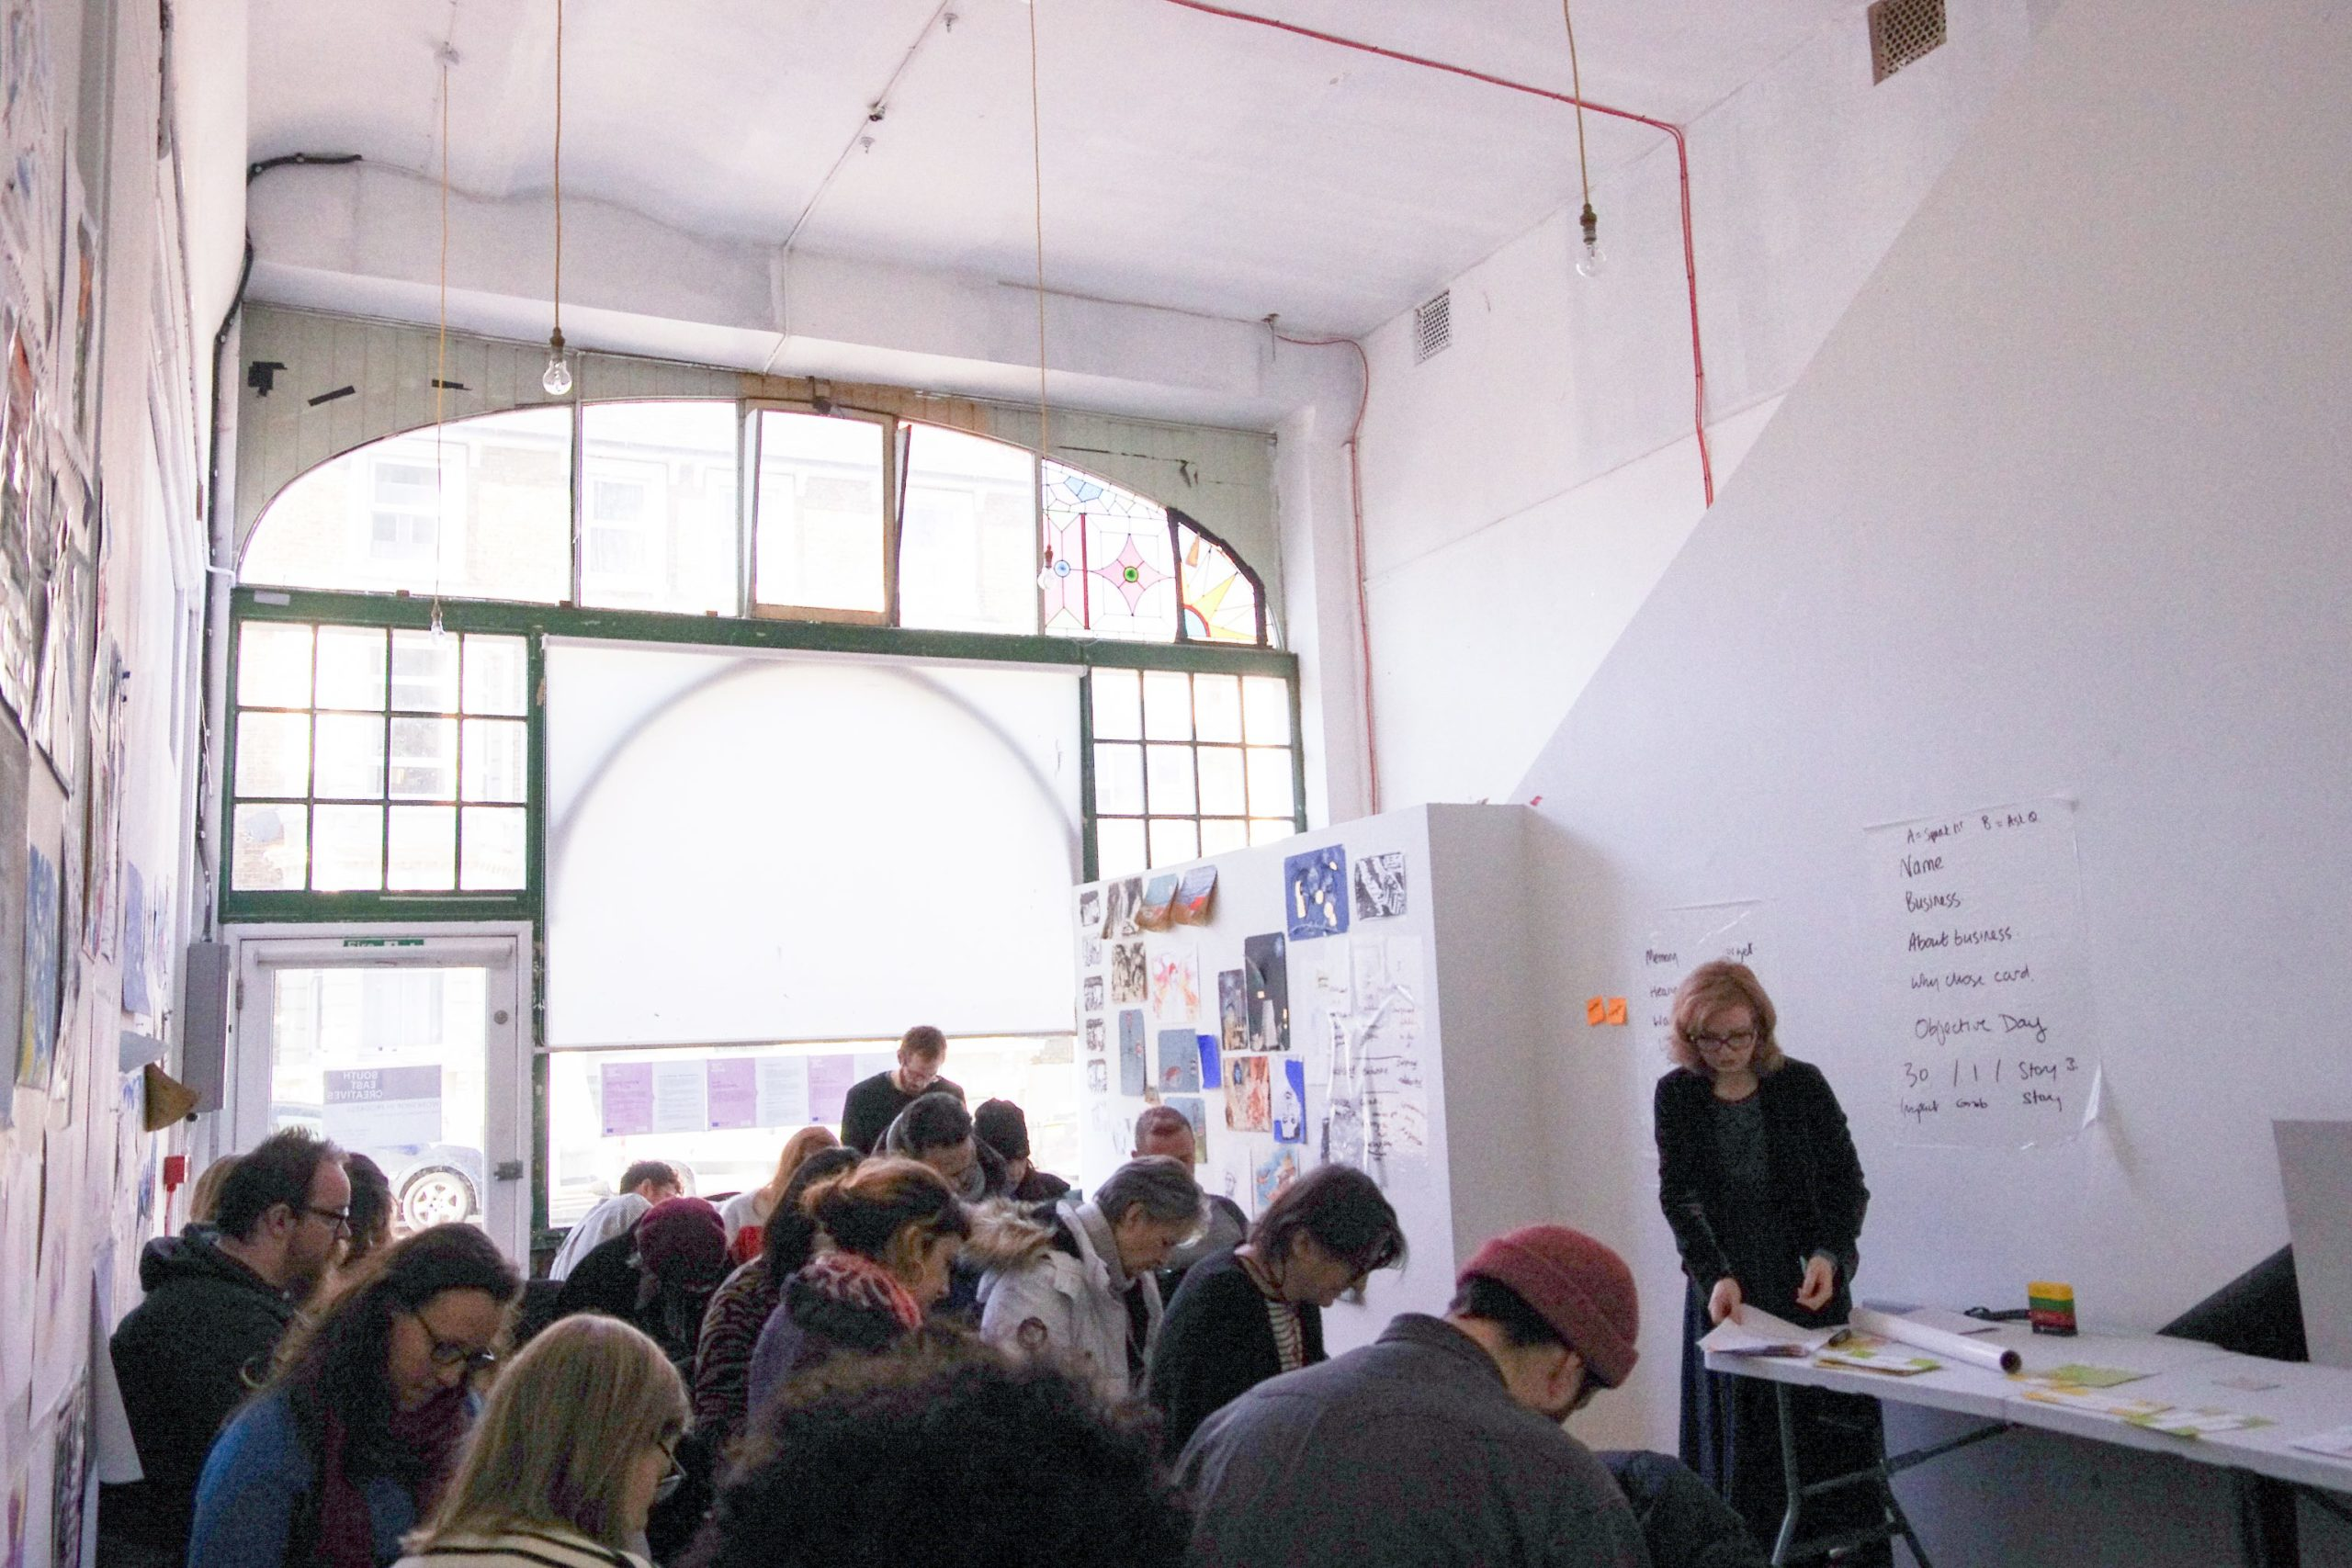 a lve workshop taking place in a large light flooded space with many old windows